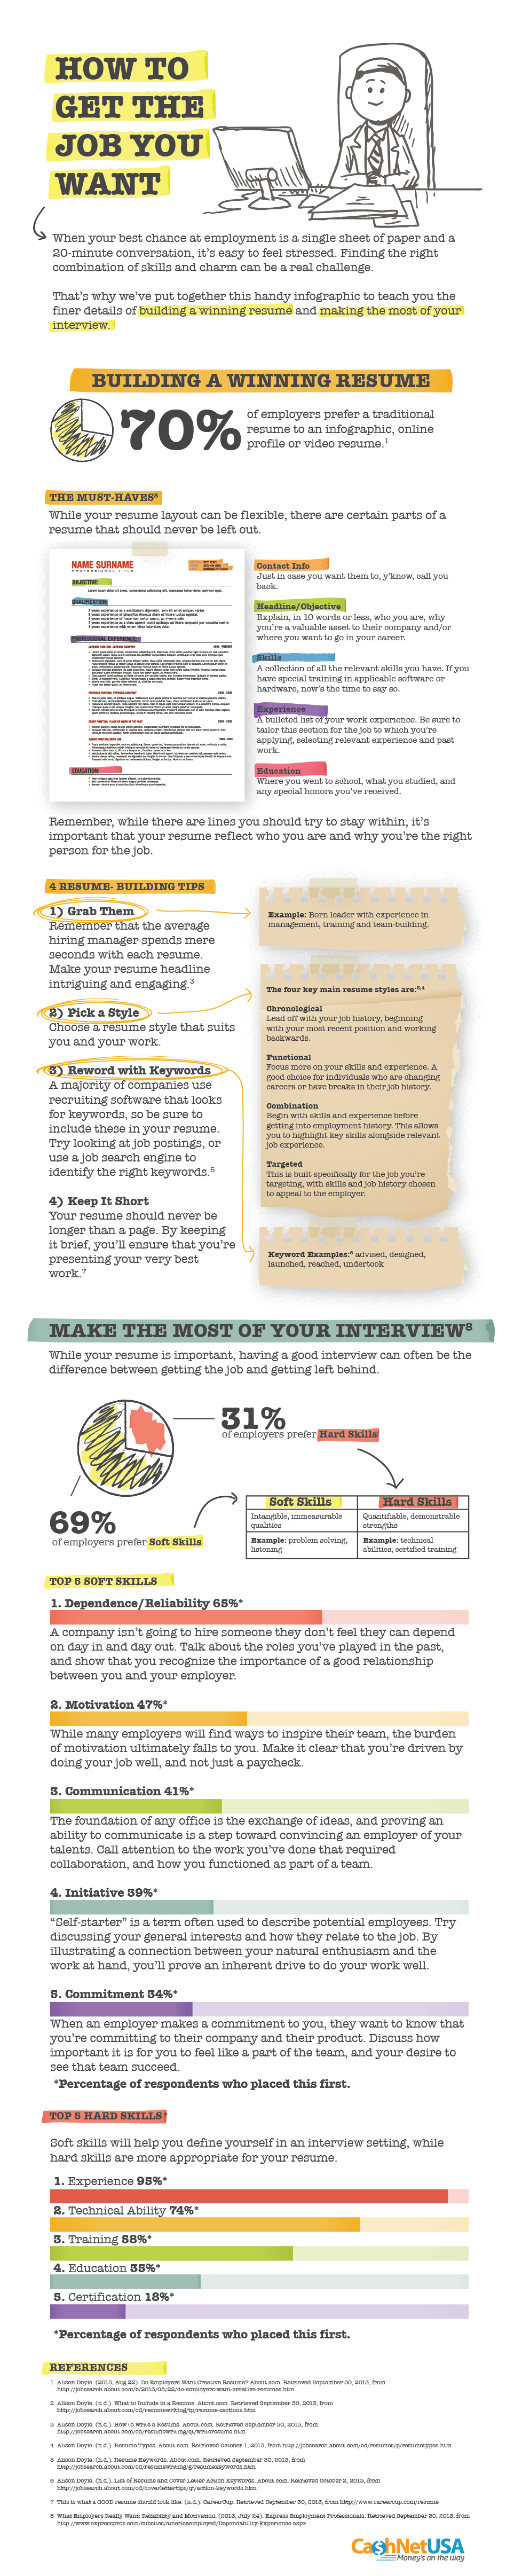 How to Get the Job You Want (Infographic)